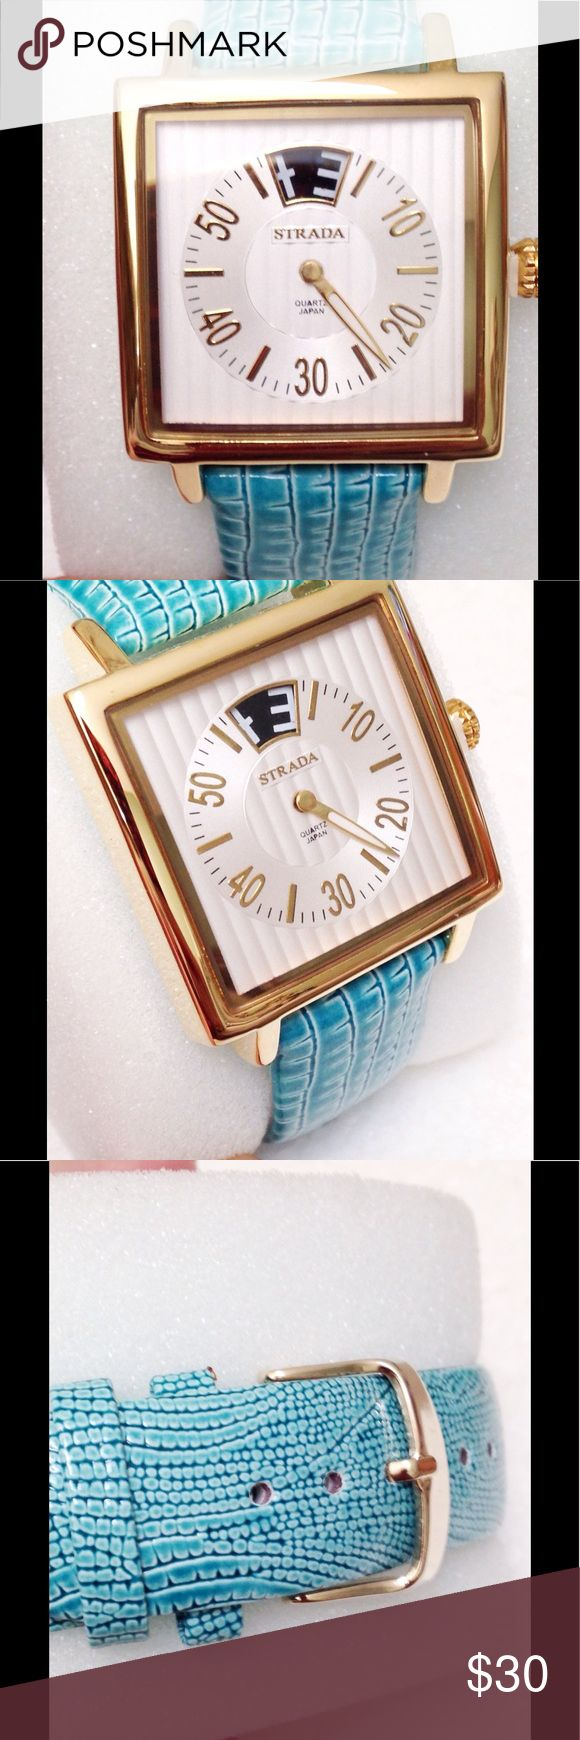 """🆕 Aqua Dreaming Love this watch and how the 12 o'clock setting is so different. Face is 1 1/4"""" square. Aqua band. Japanese quartz movement, splash resistance, stainless steel back. Accessories Watches"""